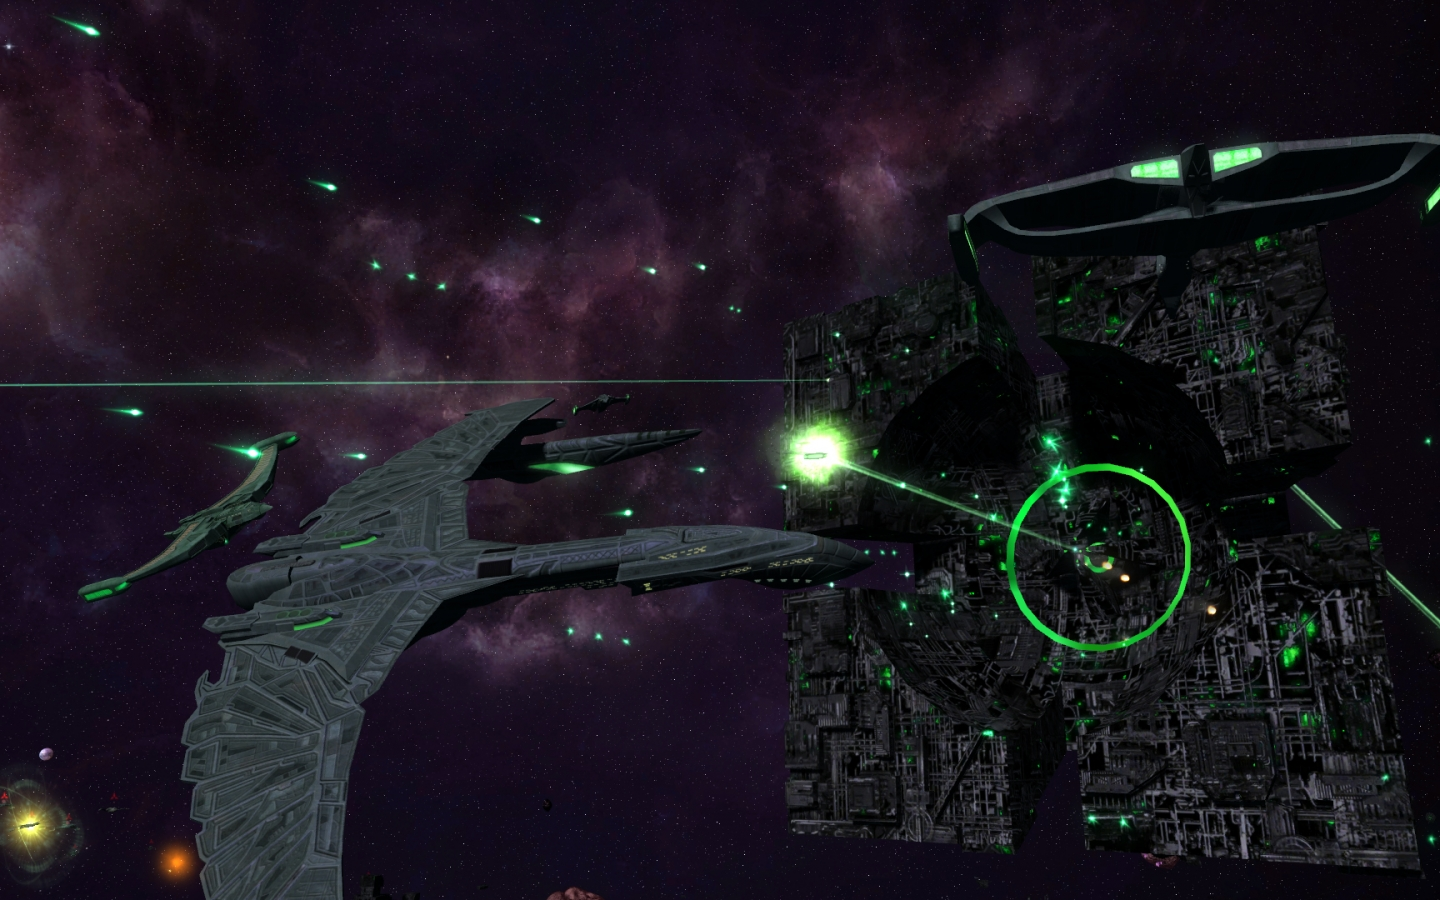 download HD Borg Star Trek Background [1920x1080] for your 1440x900